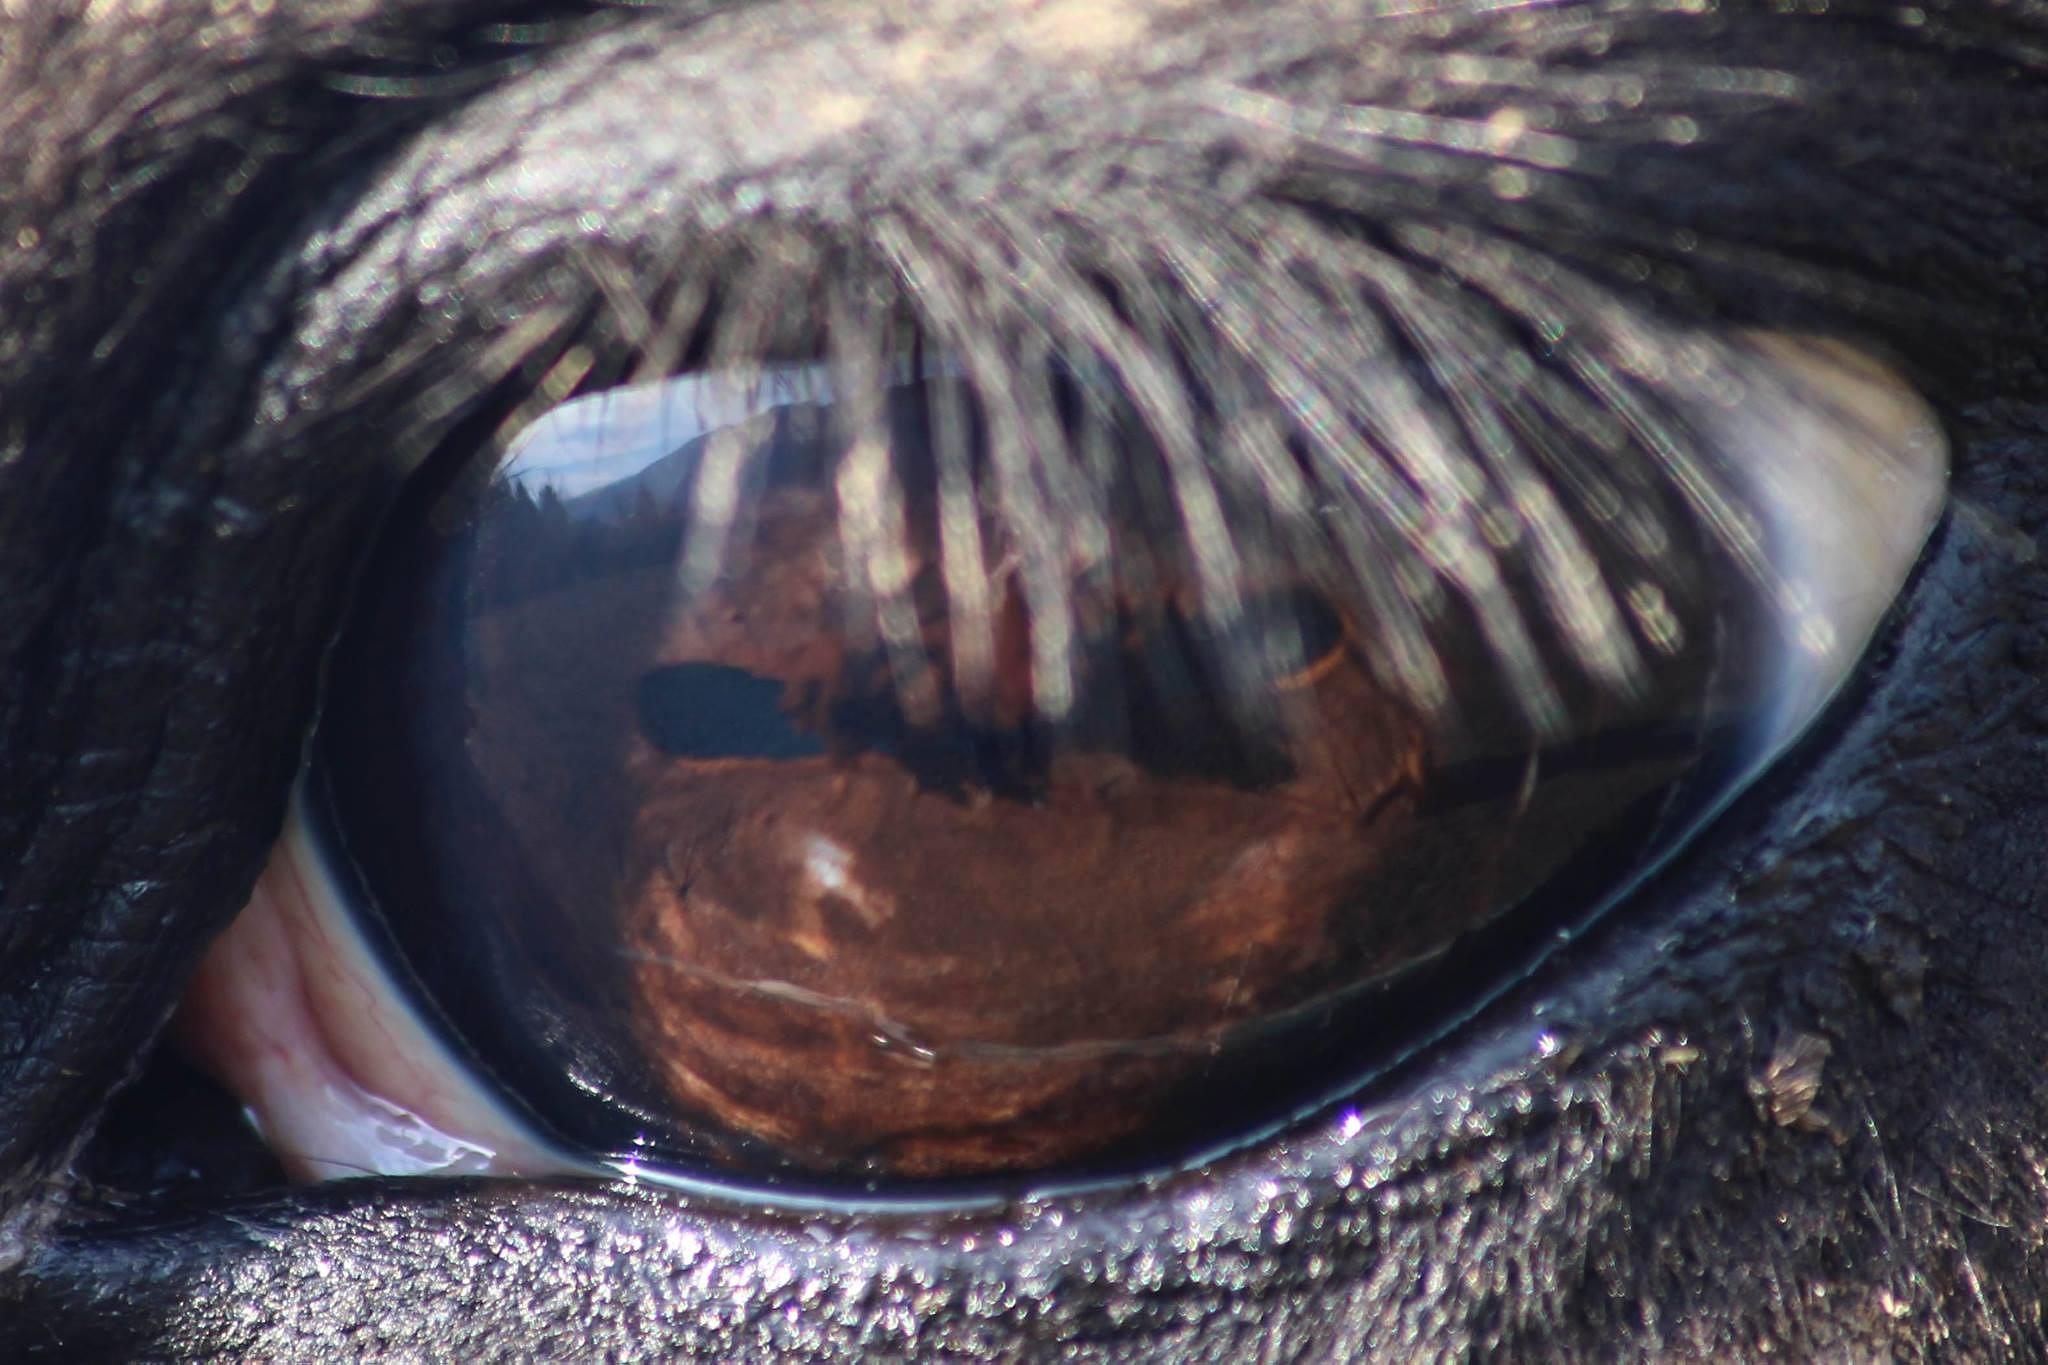 Through the Horse's Eye by Joey Lezotte